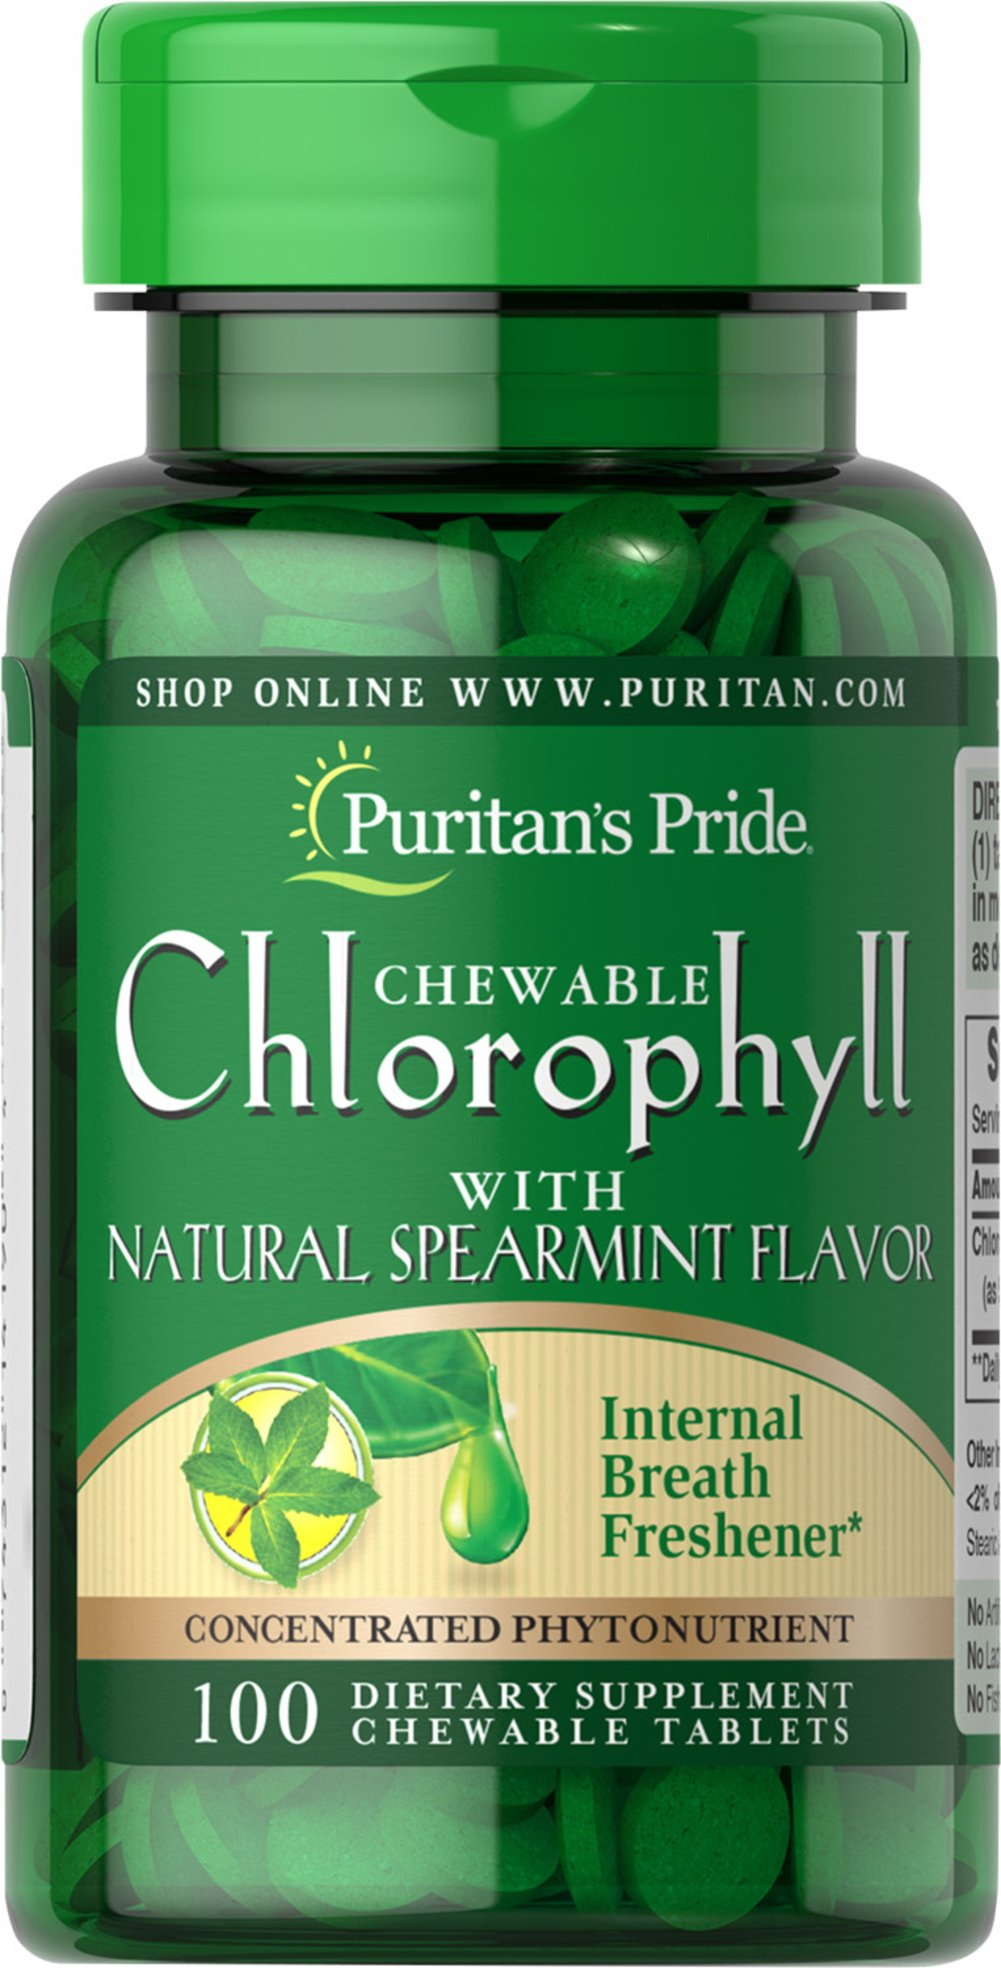 Chewable Chlorophyll & Mint 3 mg <p>These tablets contain natural chlorophyll and mint, two effective breath fresheners.  Use them as needed to prevent or stop odors caused by indigestion, dentures, smoking, alcohol, onions, garlic and other foods.</p> 100 Chewables 3 mg $3.99